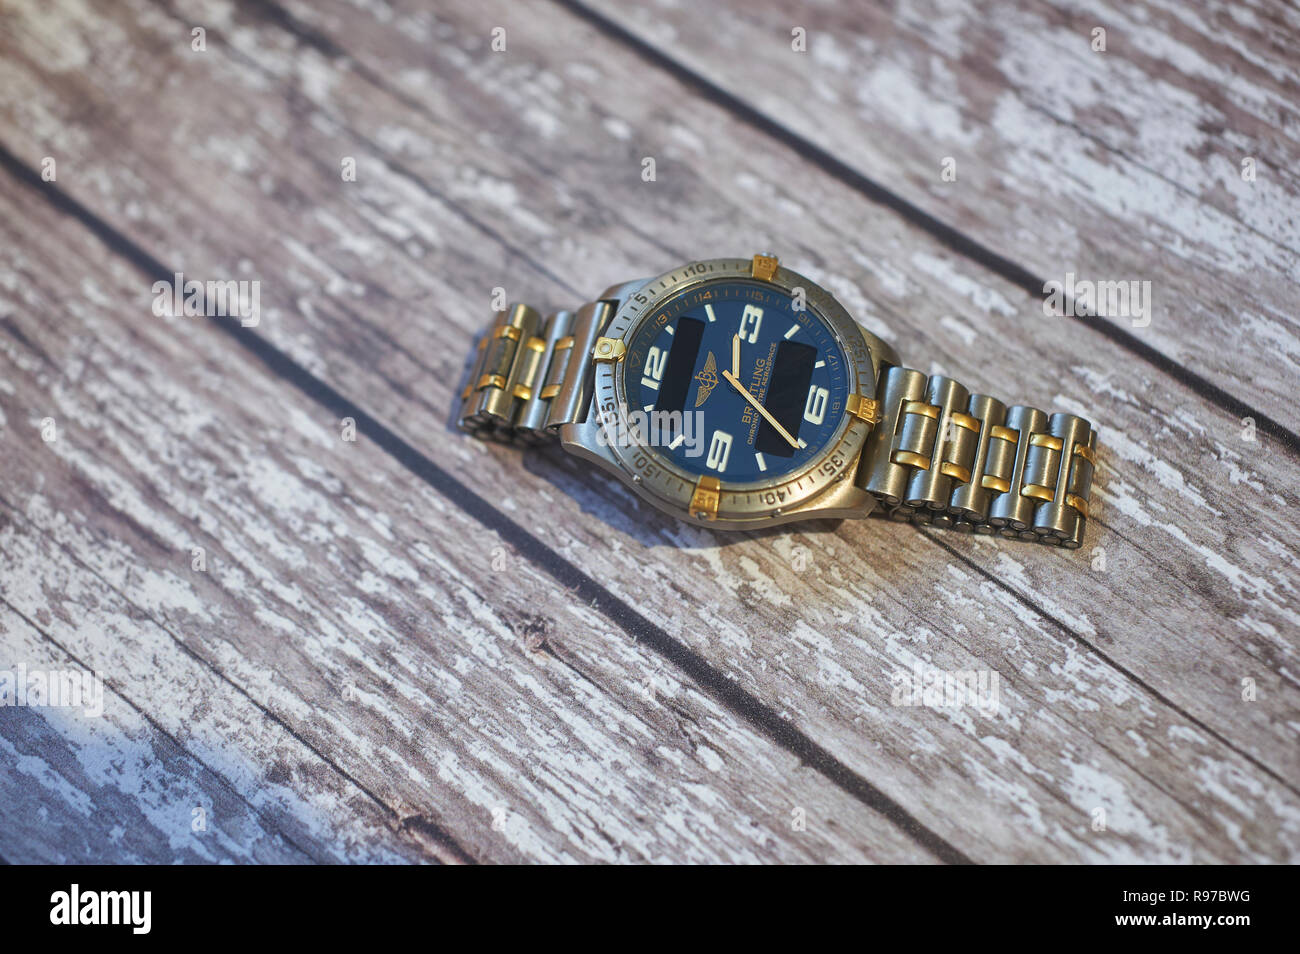 Breitling Aerospace aviation chronograph on a wooden table top Stock Photo